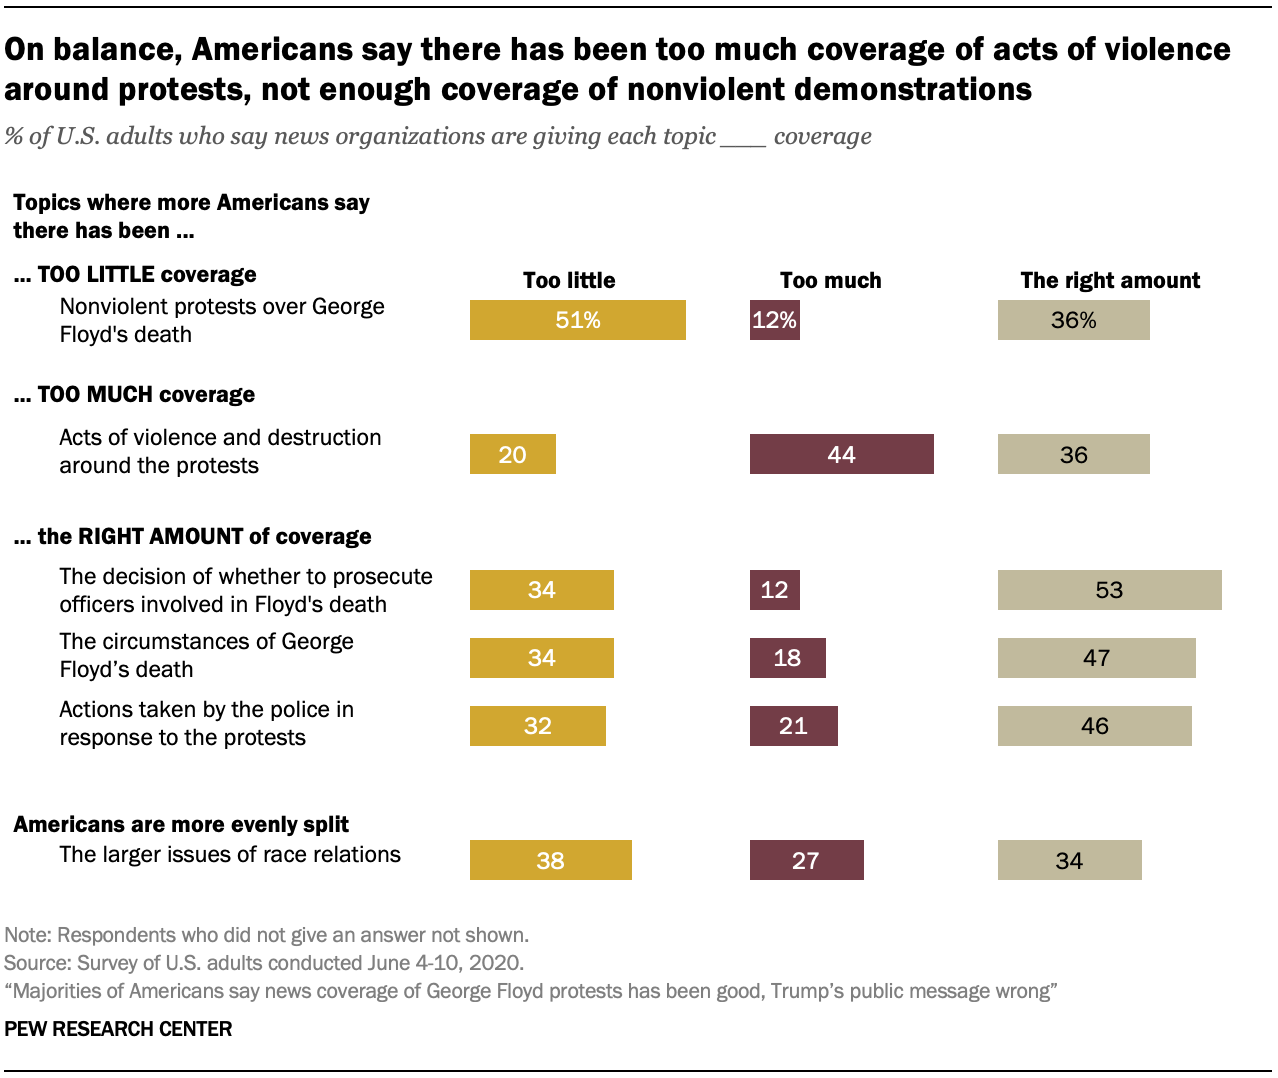 On balance, Americans say there has been too much coverage of acts of violence around protests, not enough coverage of nonviolent demonstrations